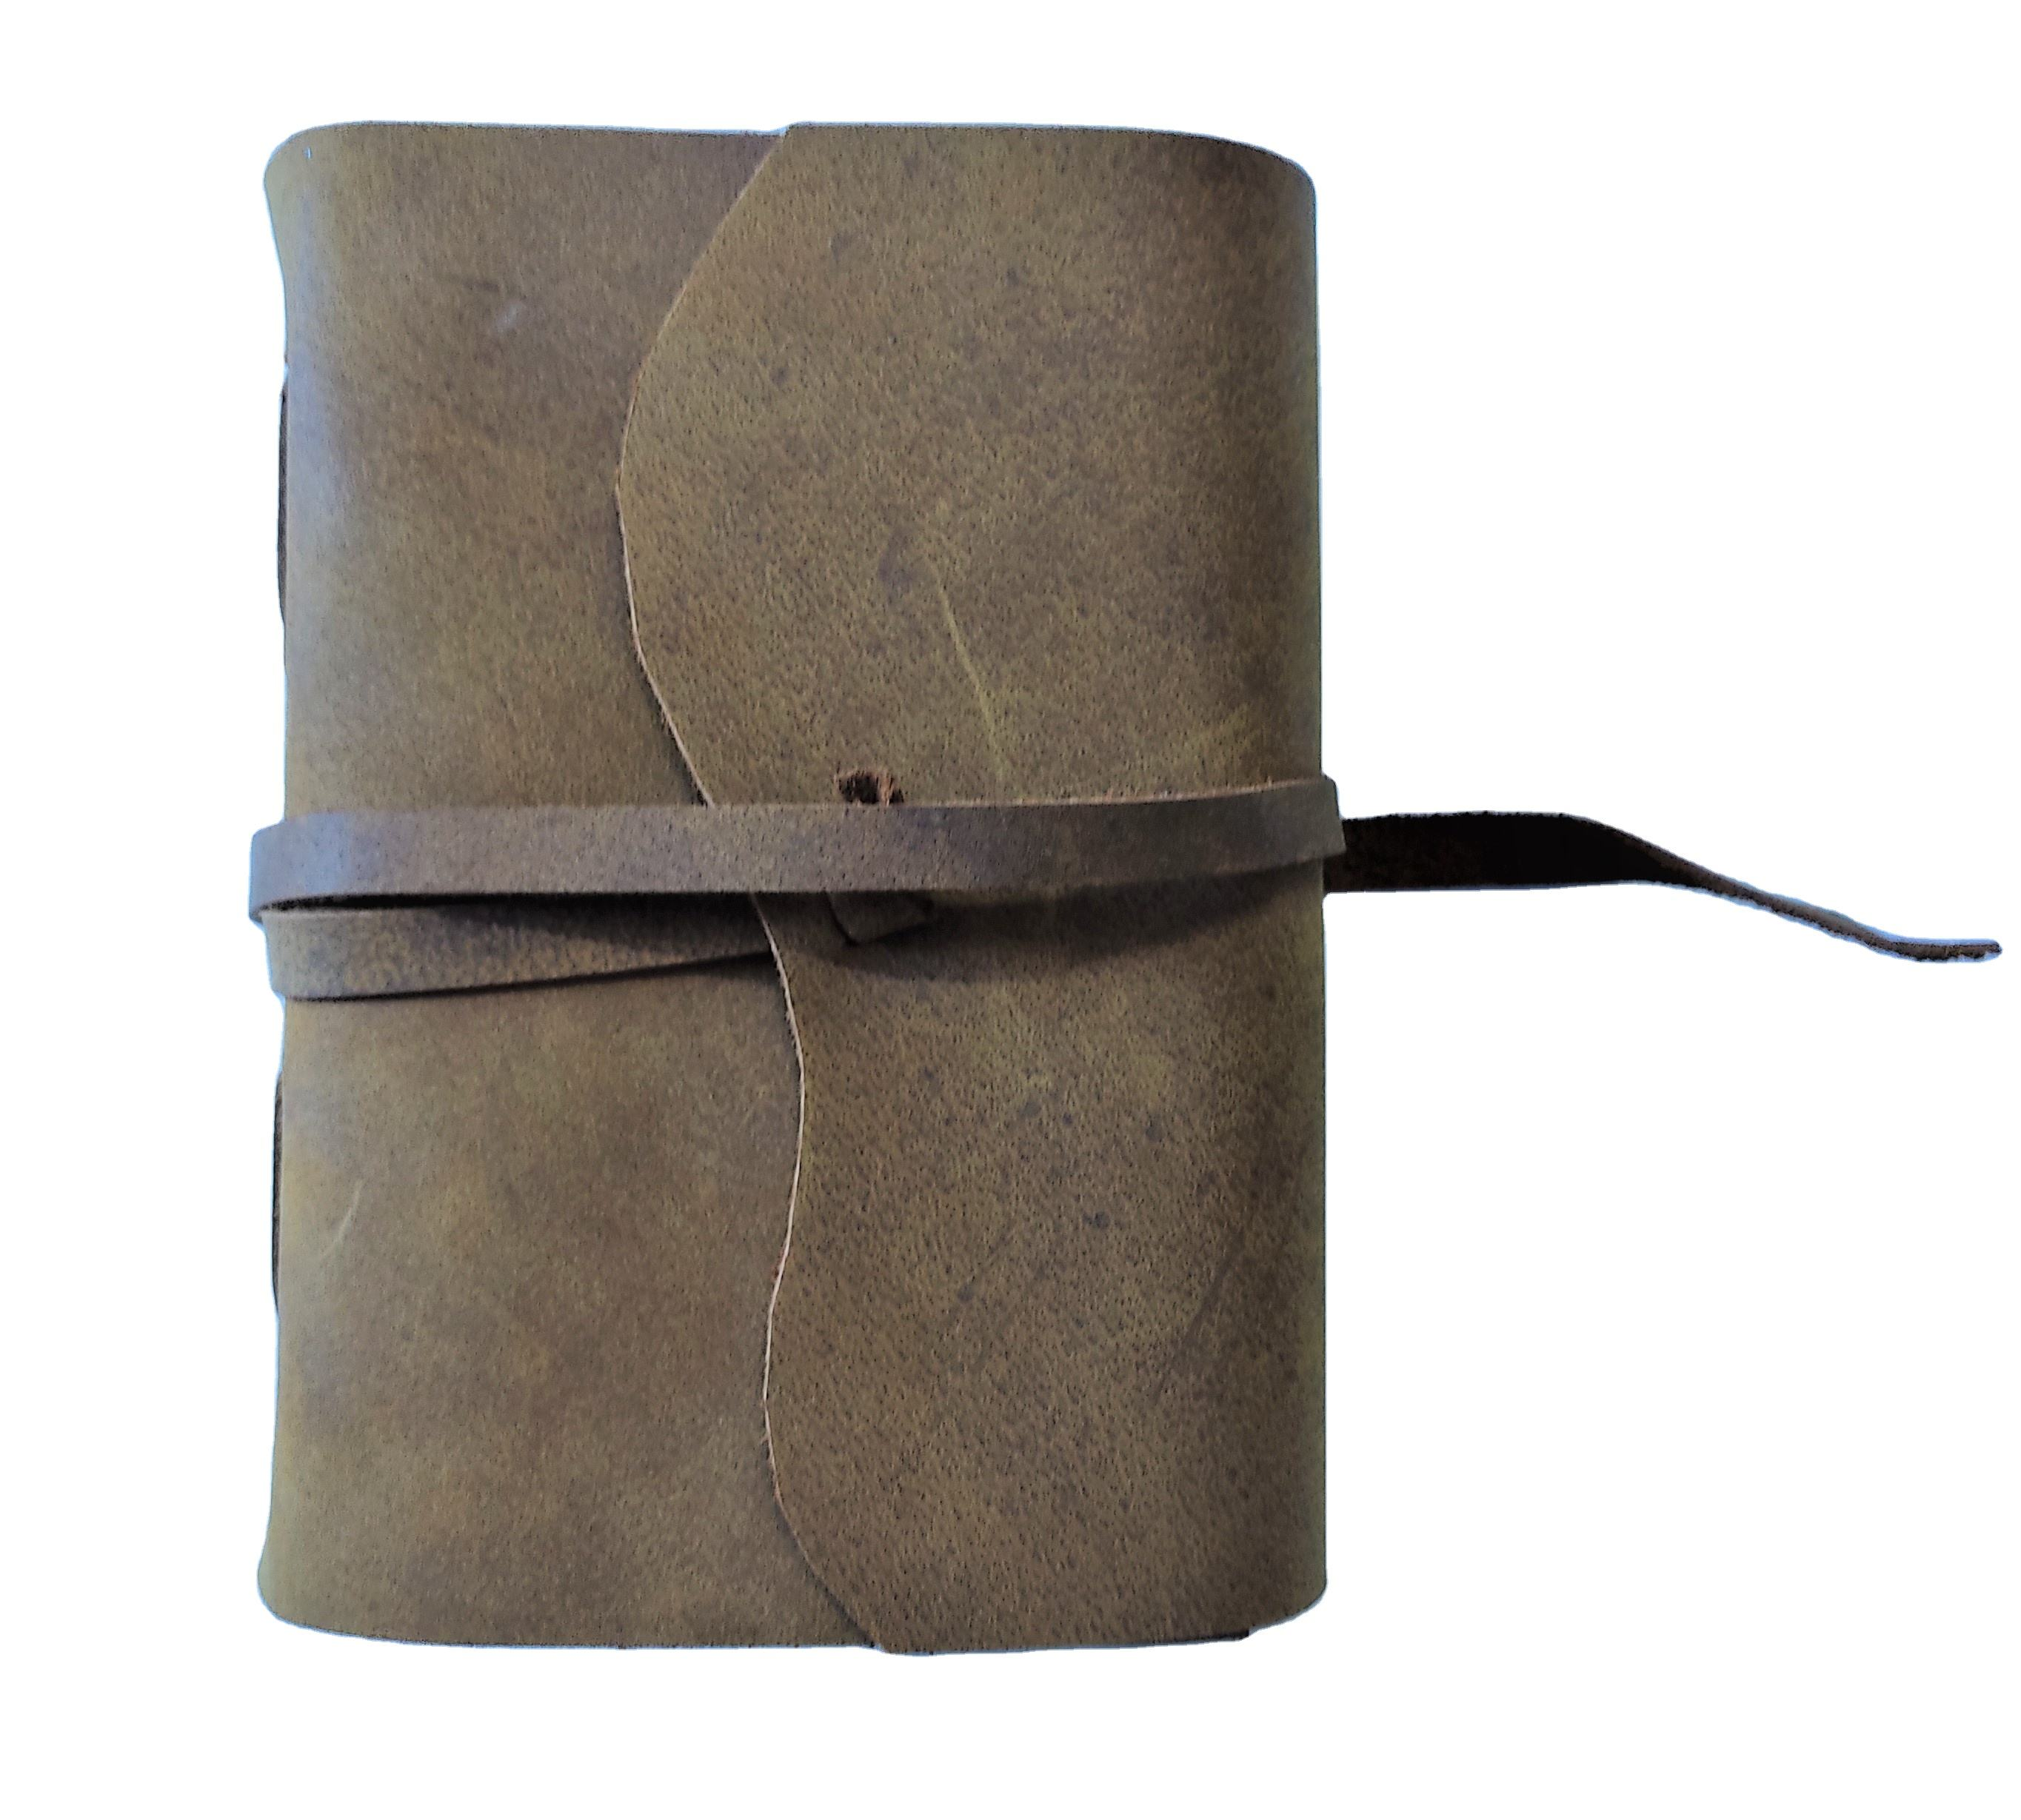 Vintage leather journals with handmade cotton rag papers inside